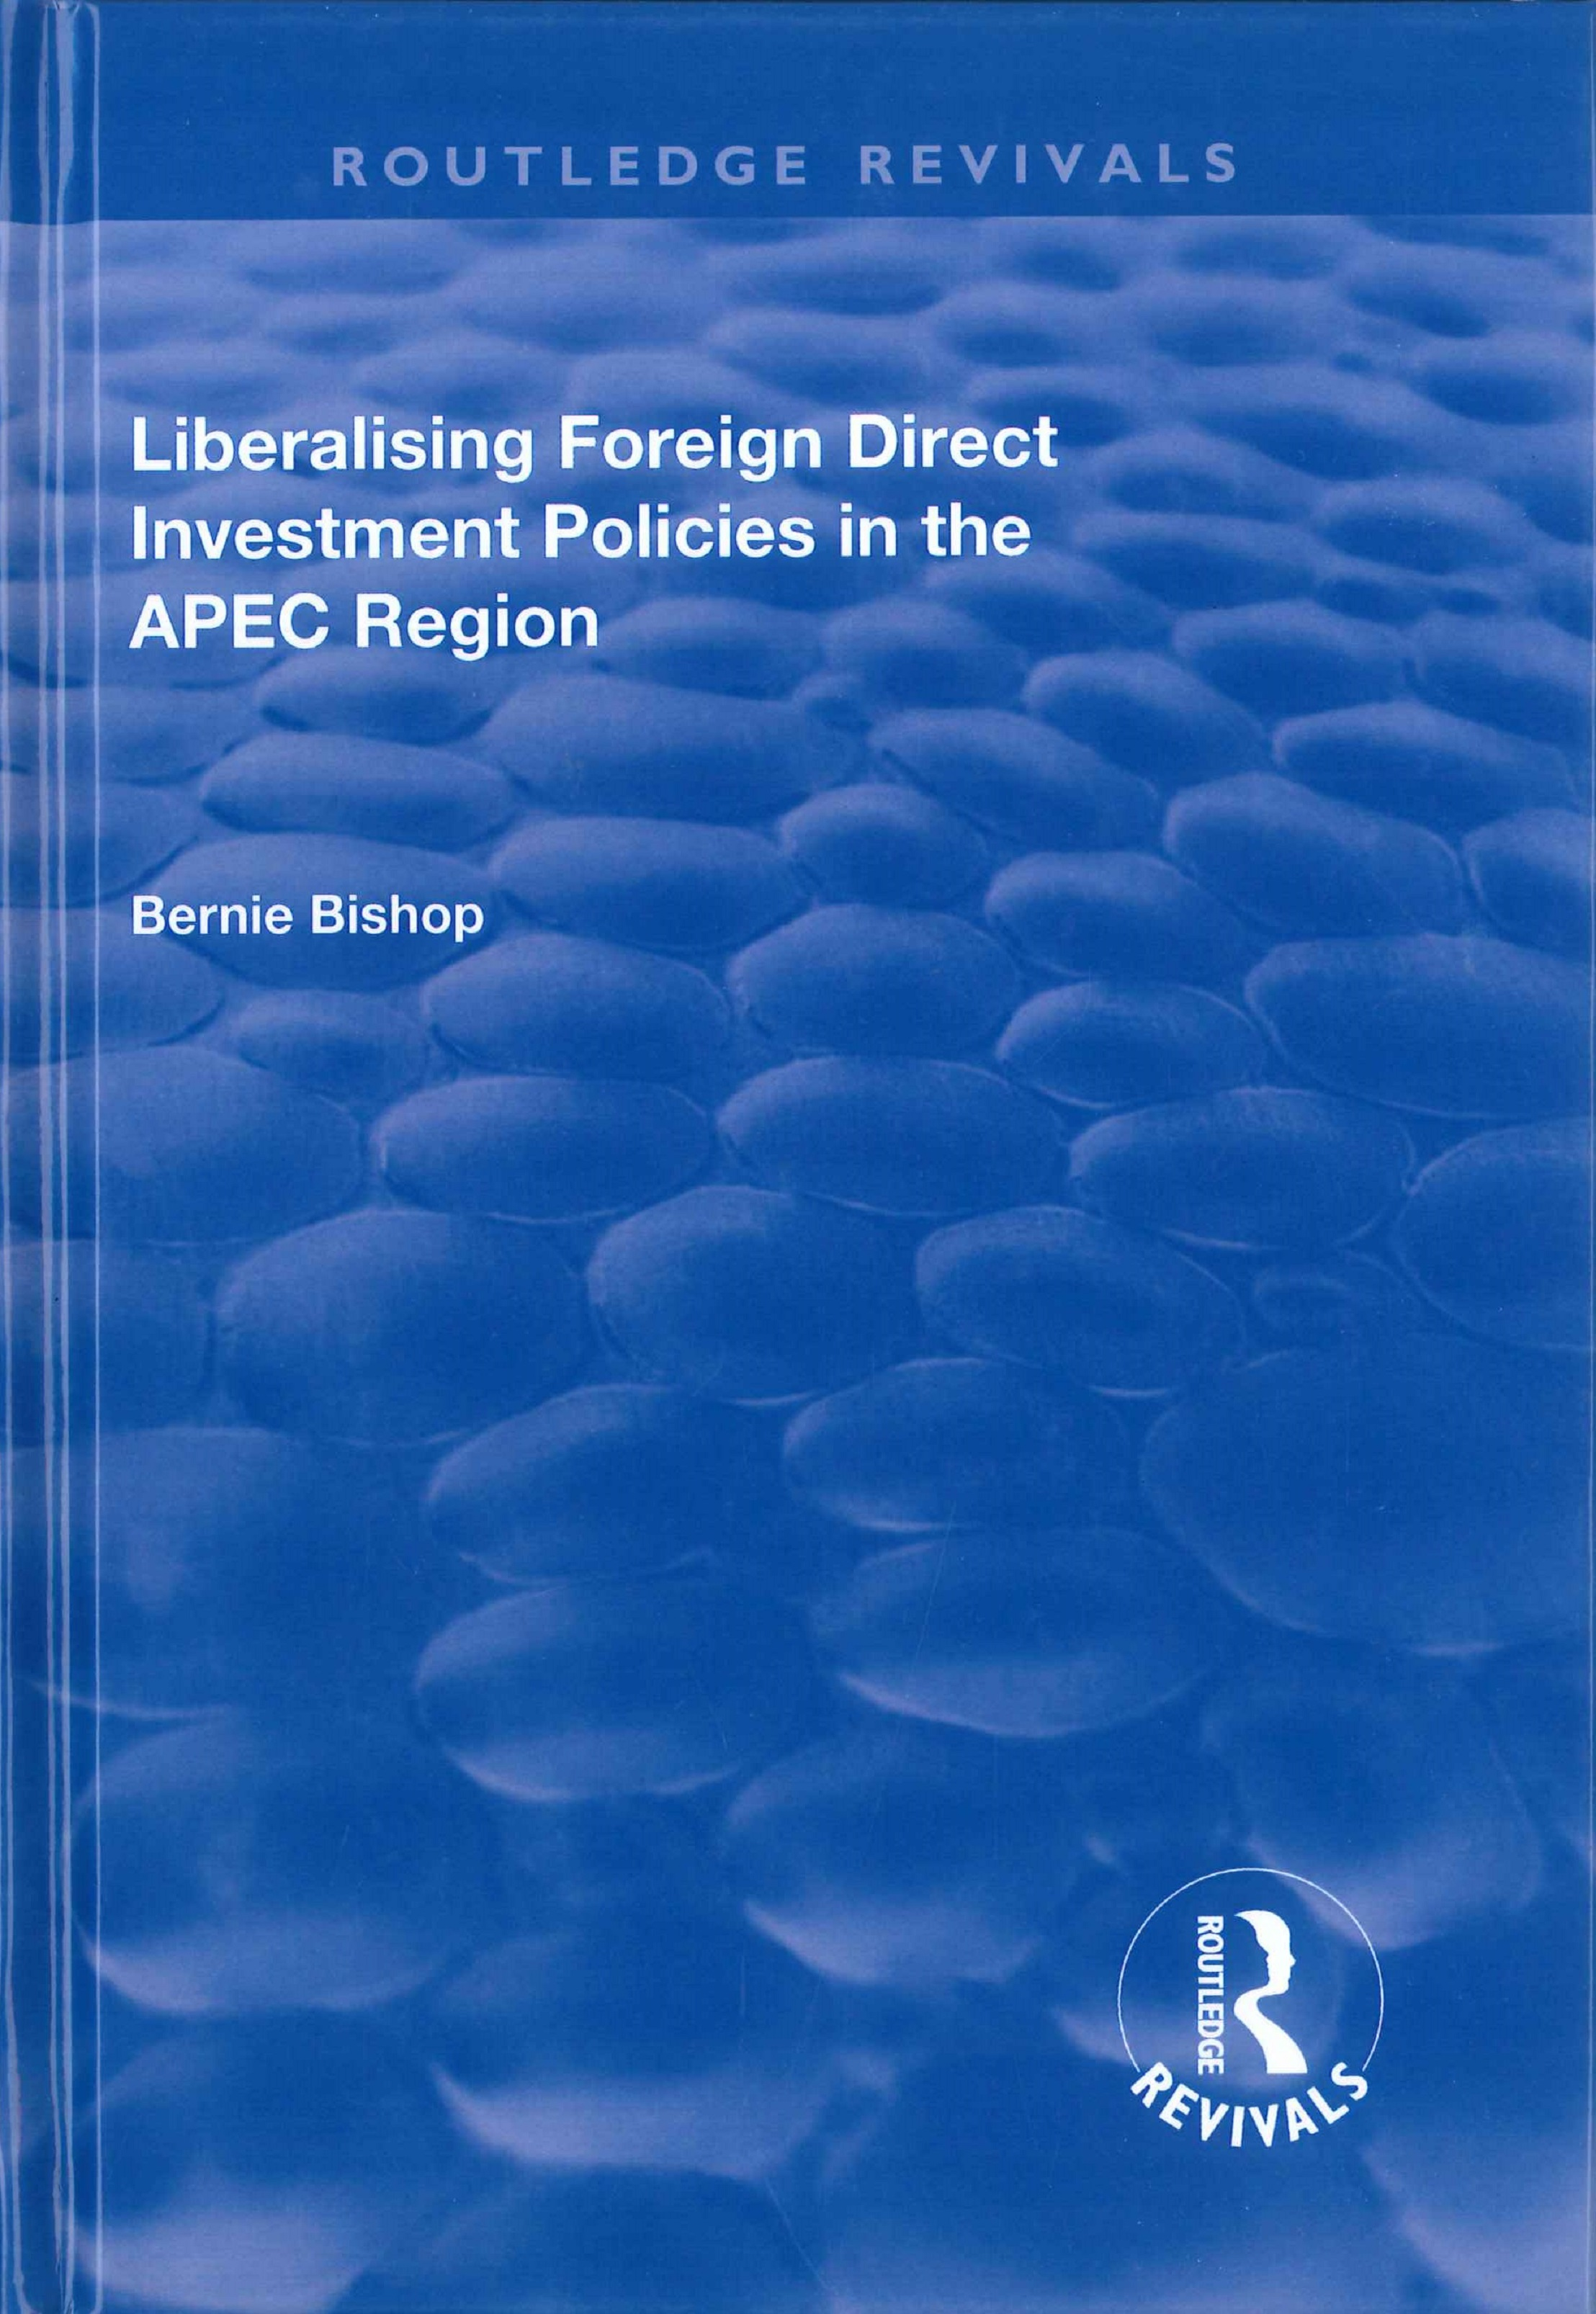 Liberalising foreign direct investment policies in the APEC region